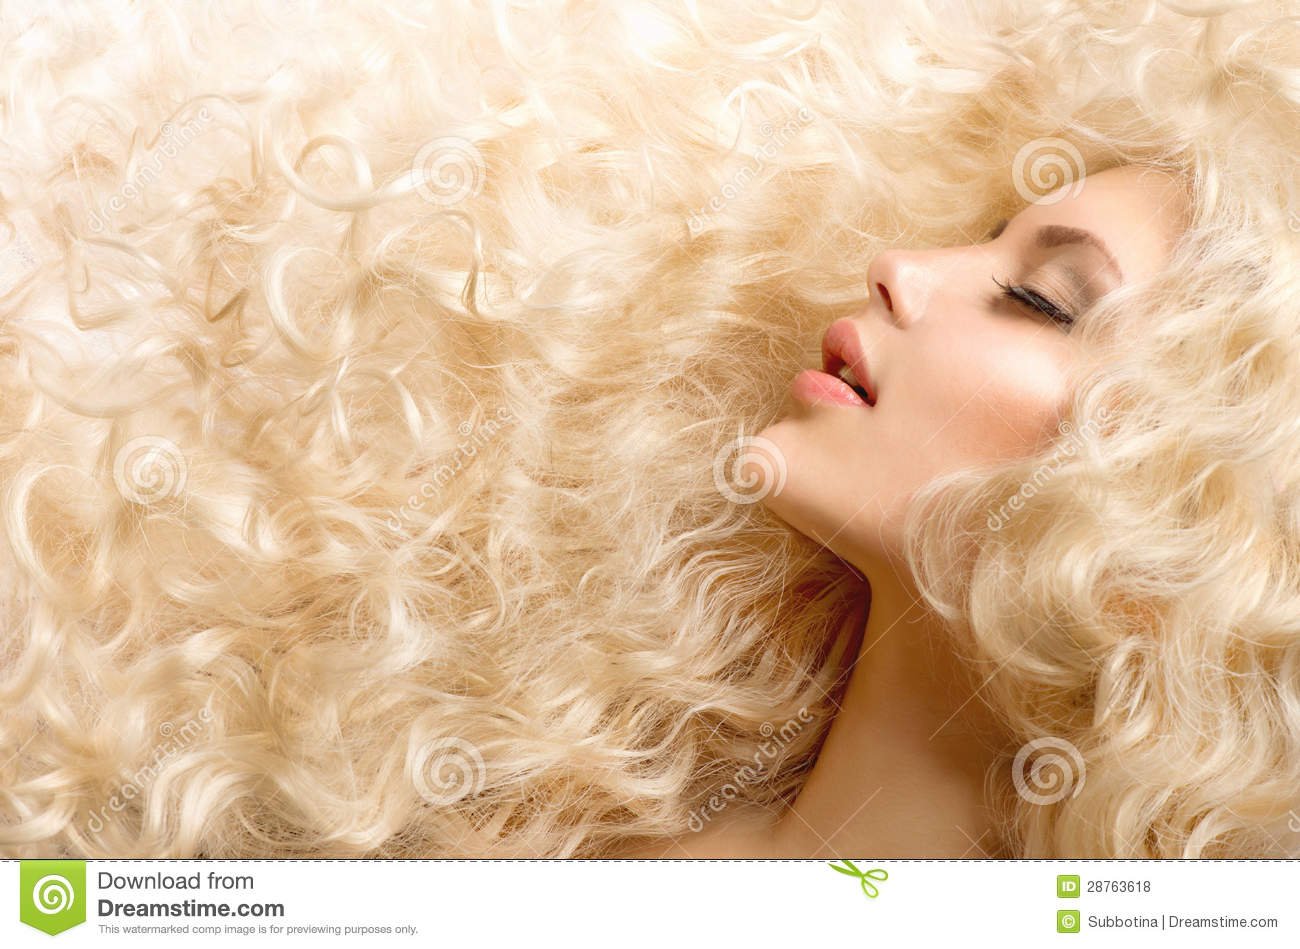 Download Curly Blond Hair stock photo. Image of extensions, girl - 28763618